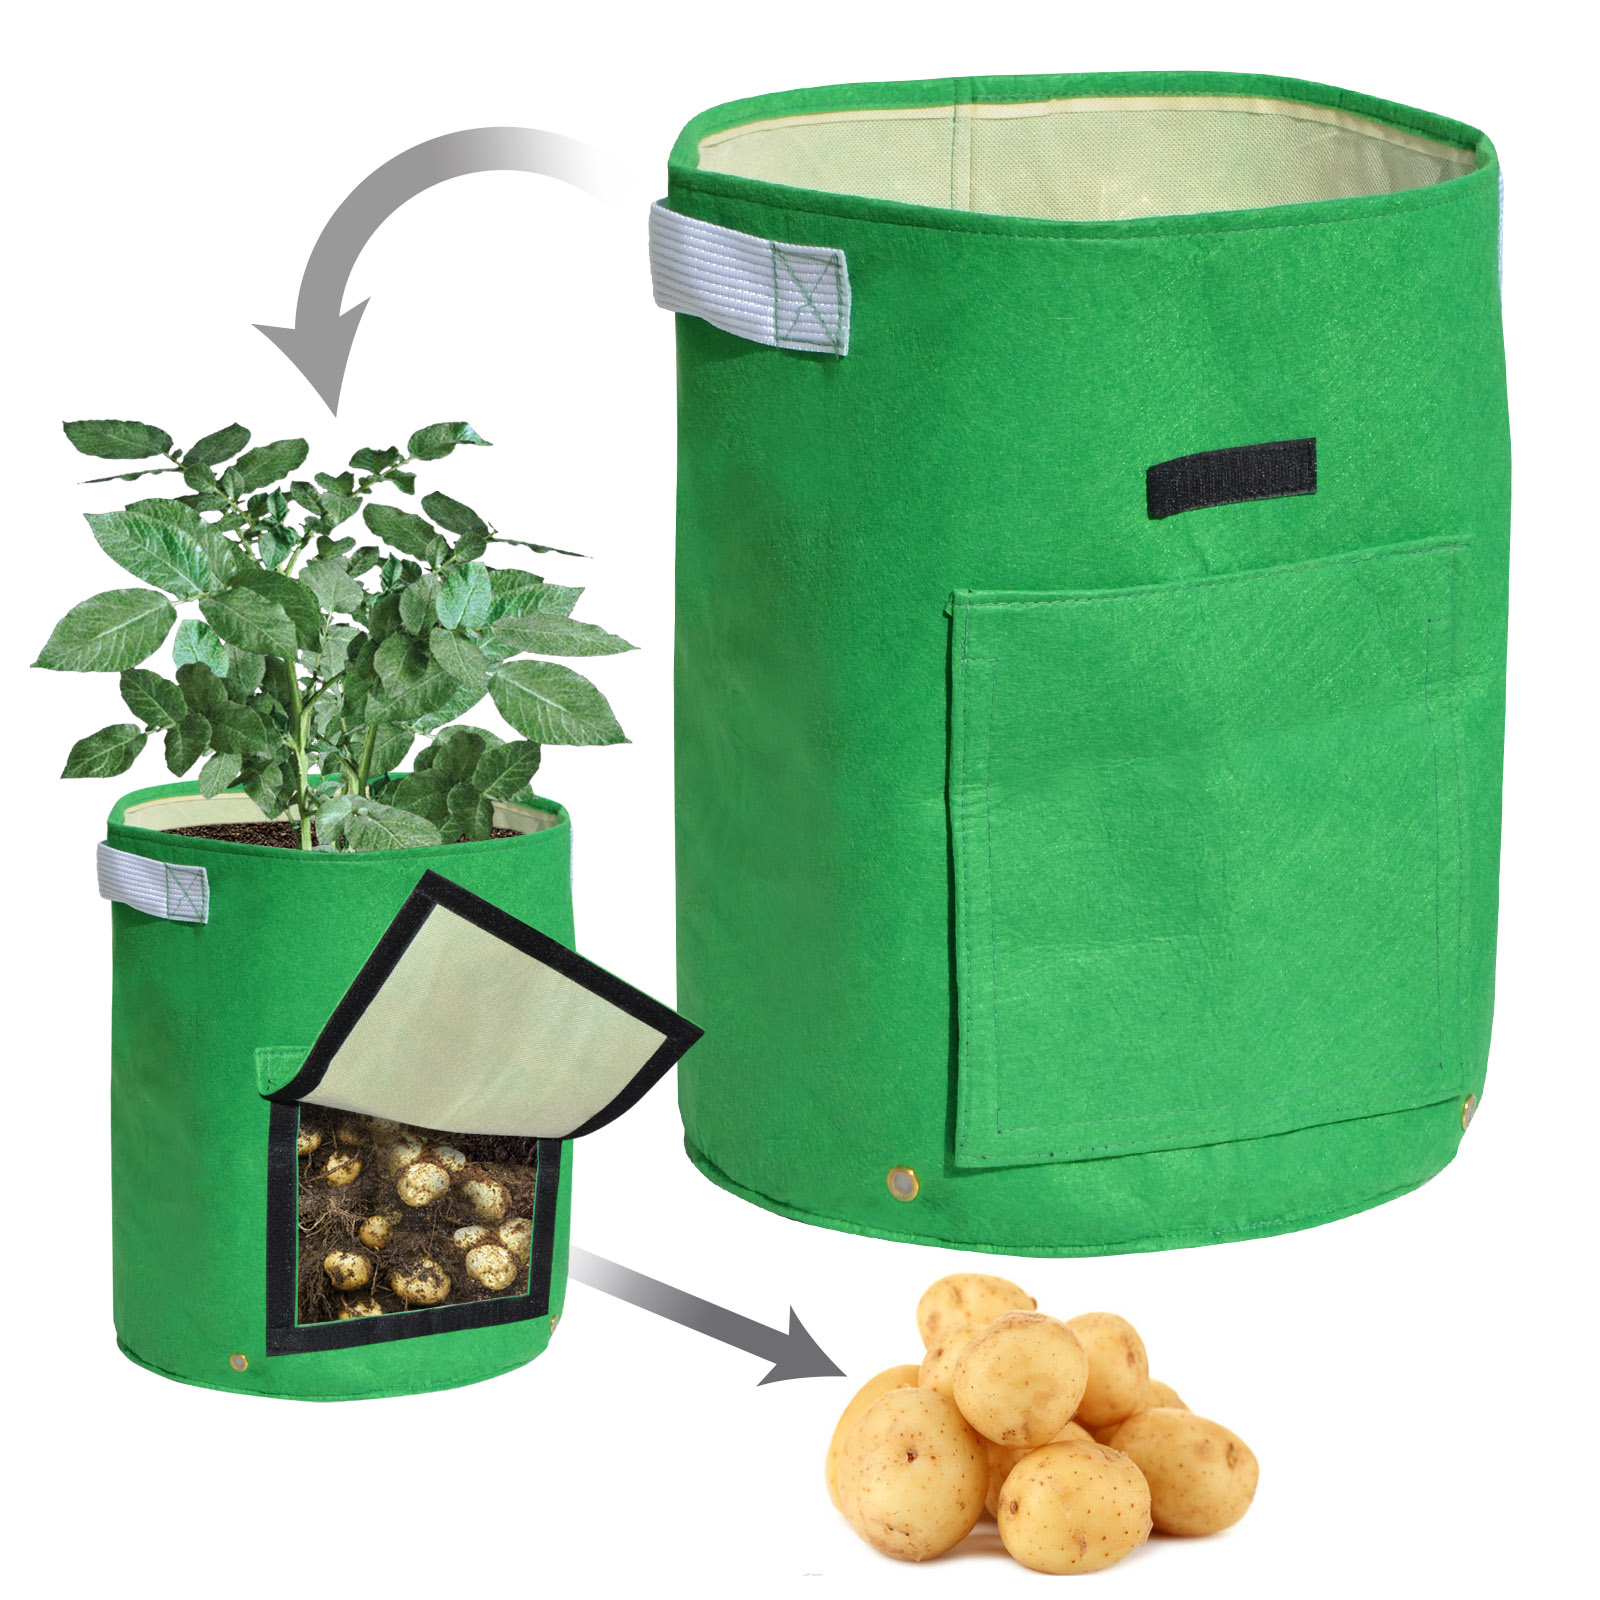 Strong Camel Garden Potato Grow Bag Planter Bag Felt Fabric for Vegetables Container Tub w Access Flap 1 PACK